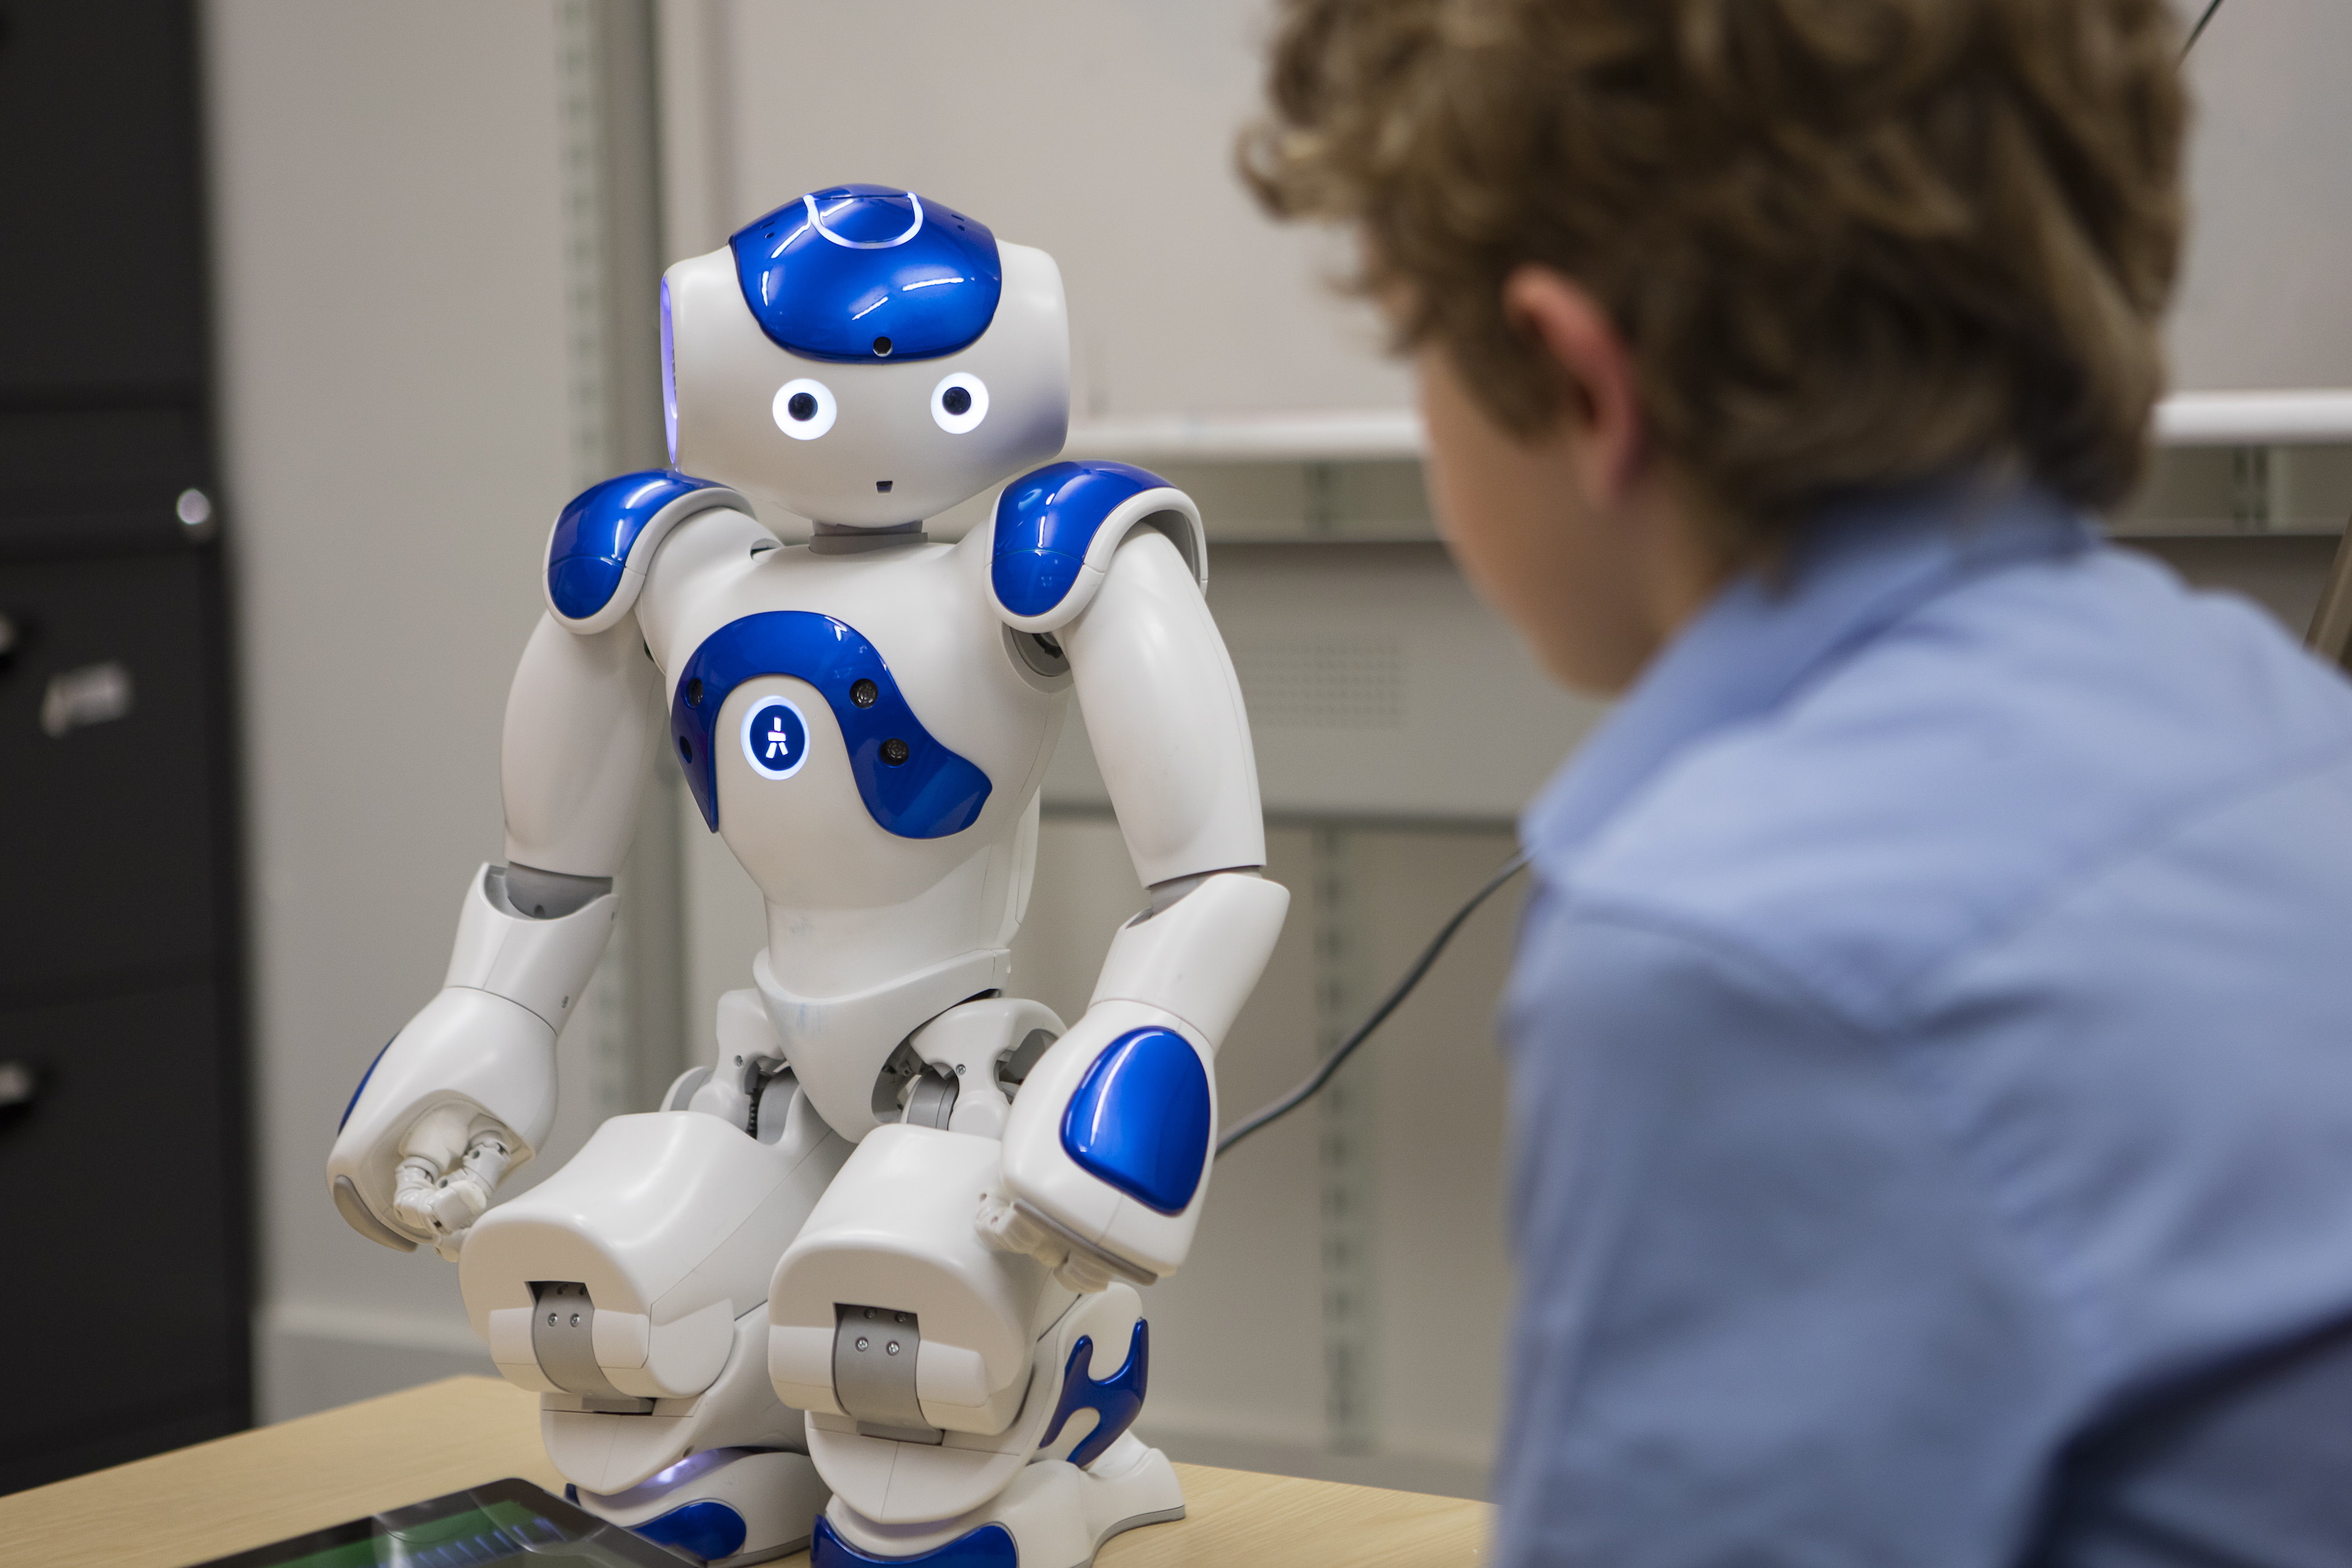 A new study showed that children between the ages of seven and nine were significantly influenced by the presence of robots.